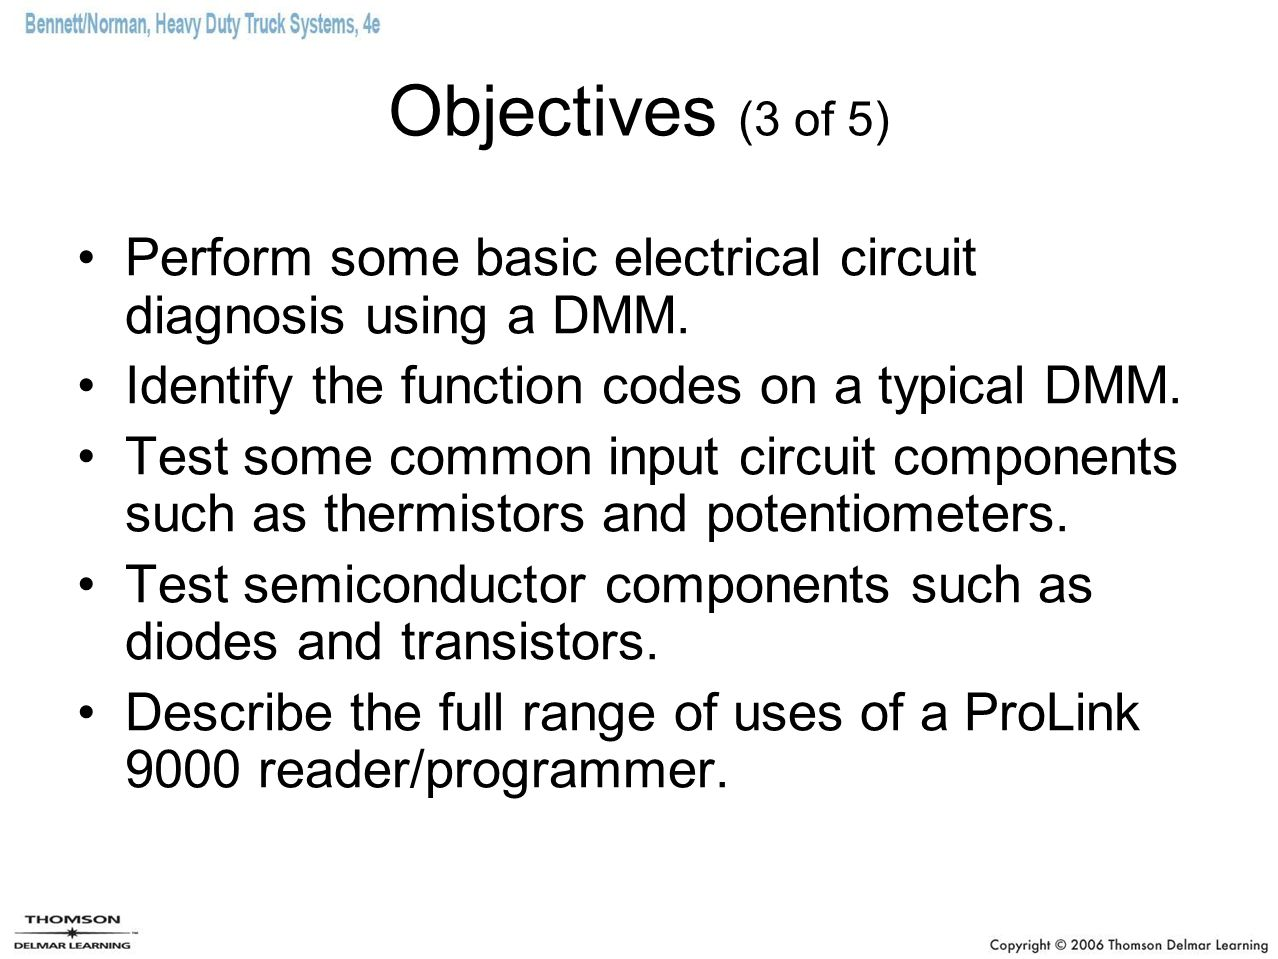 Objectives (3 of 5) Perform some basic electrical circuit diagnosis using a DMM. Identify the function codes on a typical DMM. Test some common input